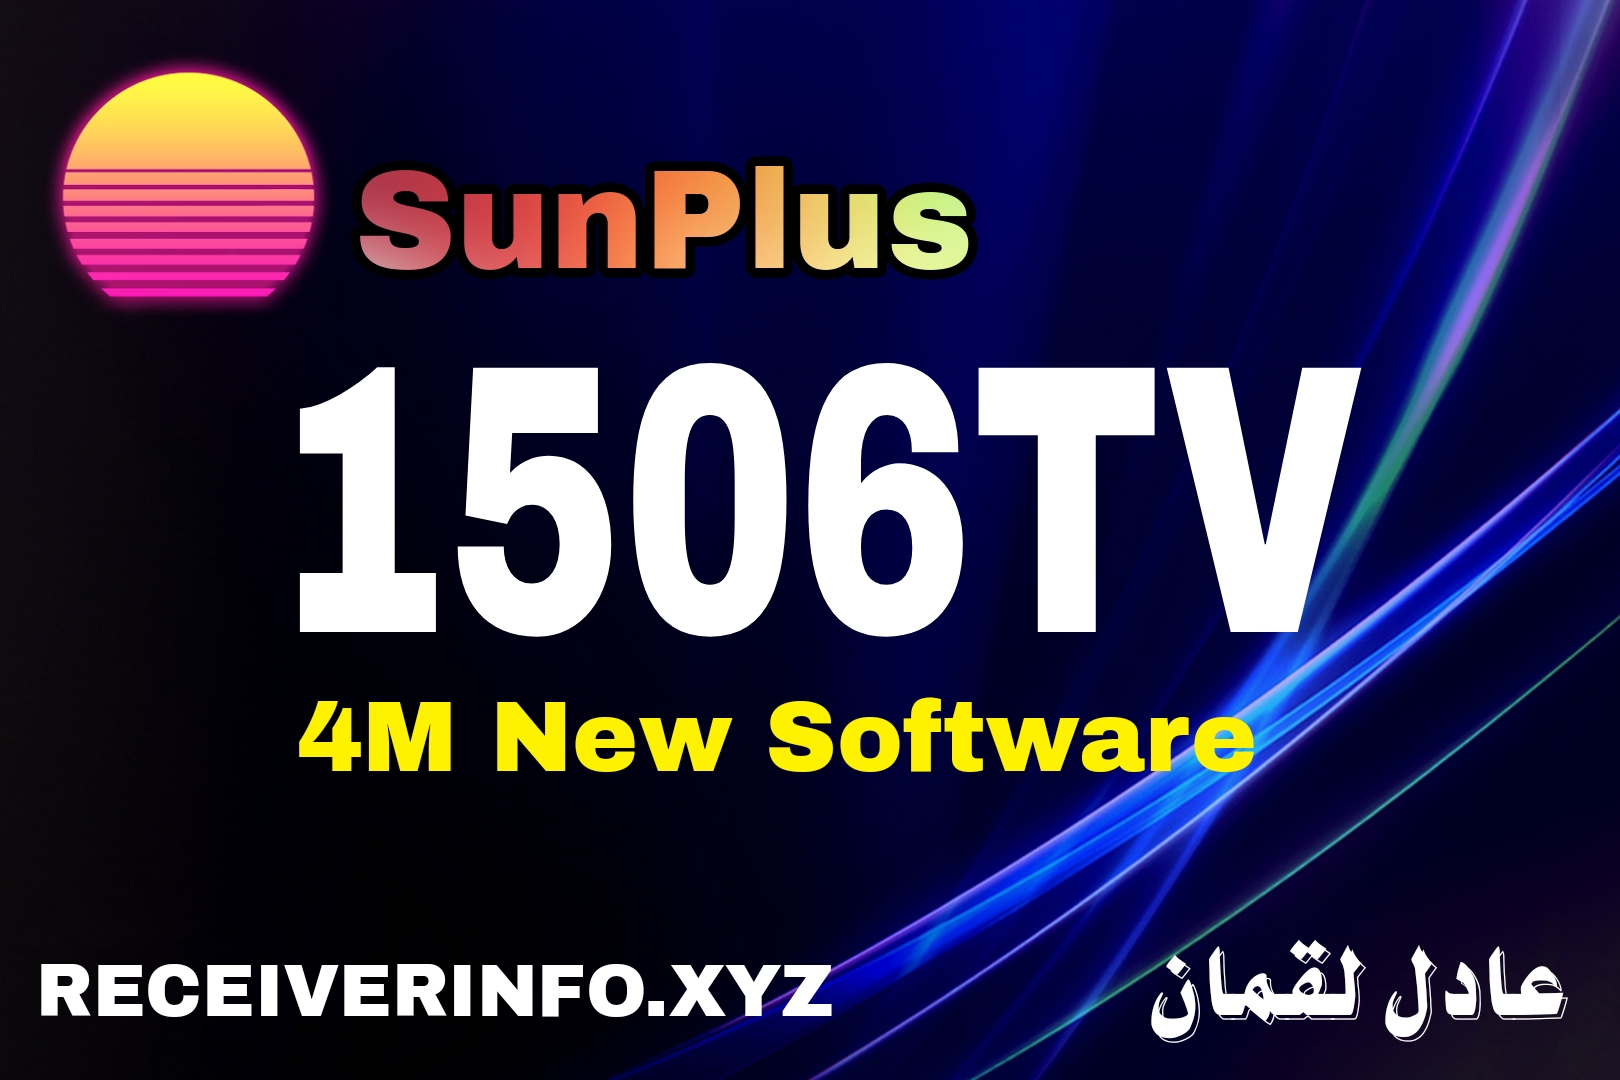 Sunplus Chipset 1506tv Hd Receiver All Software With Full Specification